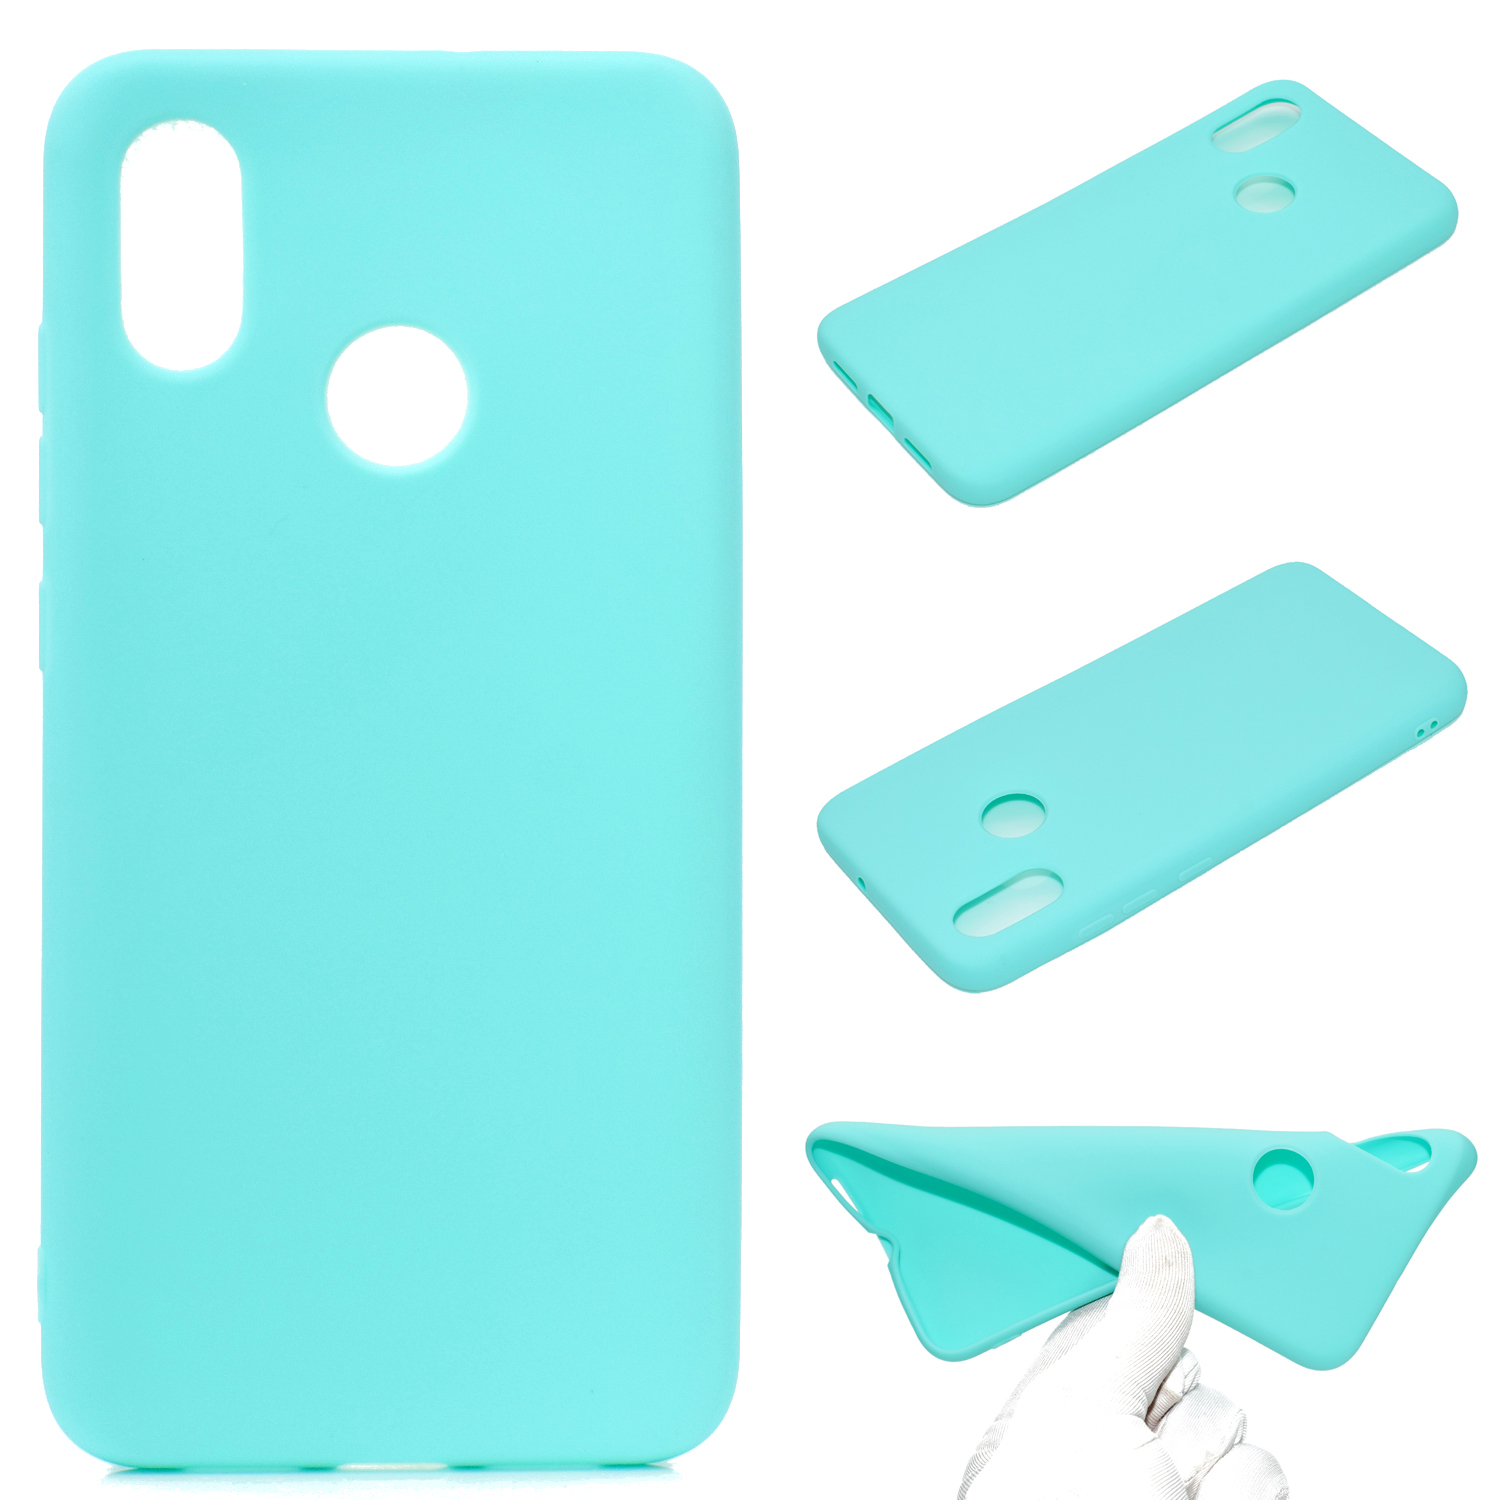 for XIAOMI Redmi S2 Lovely Candy Color Matte TPU Anti-scratch Non-slip Protective Cover Back Case Light blue